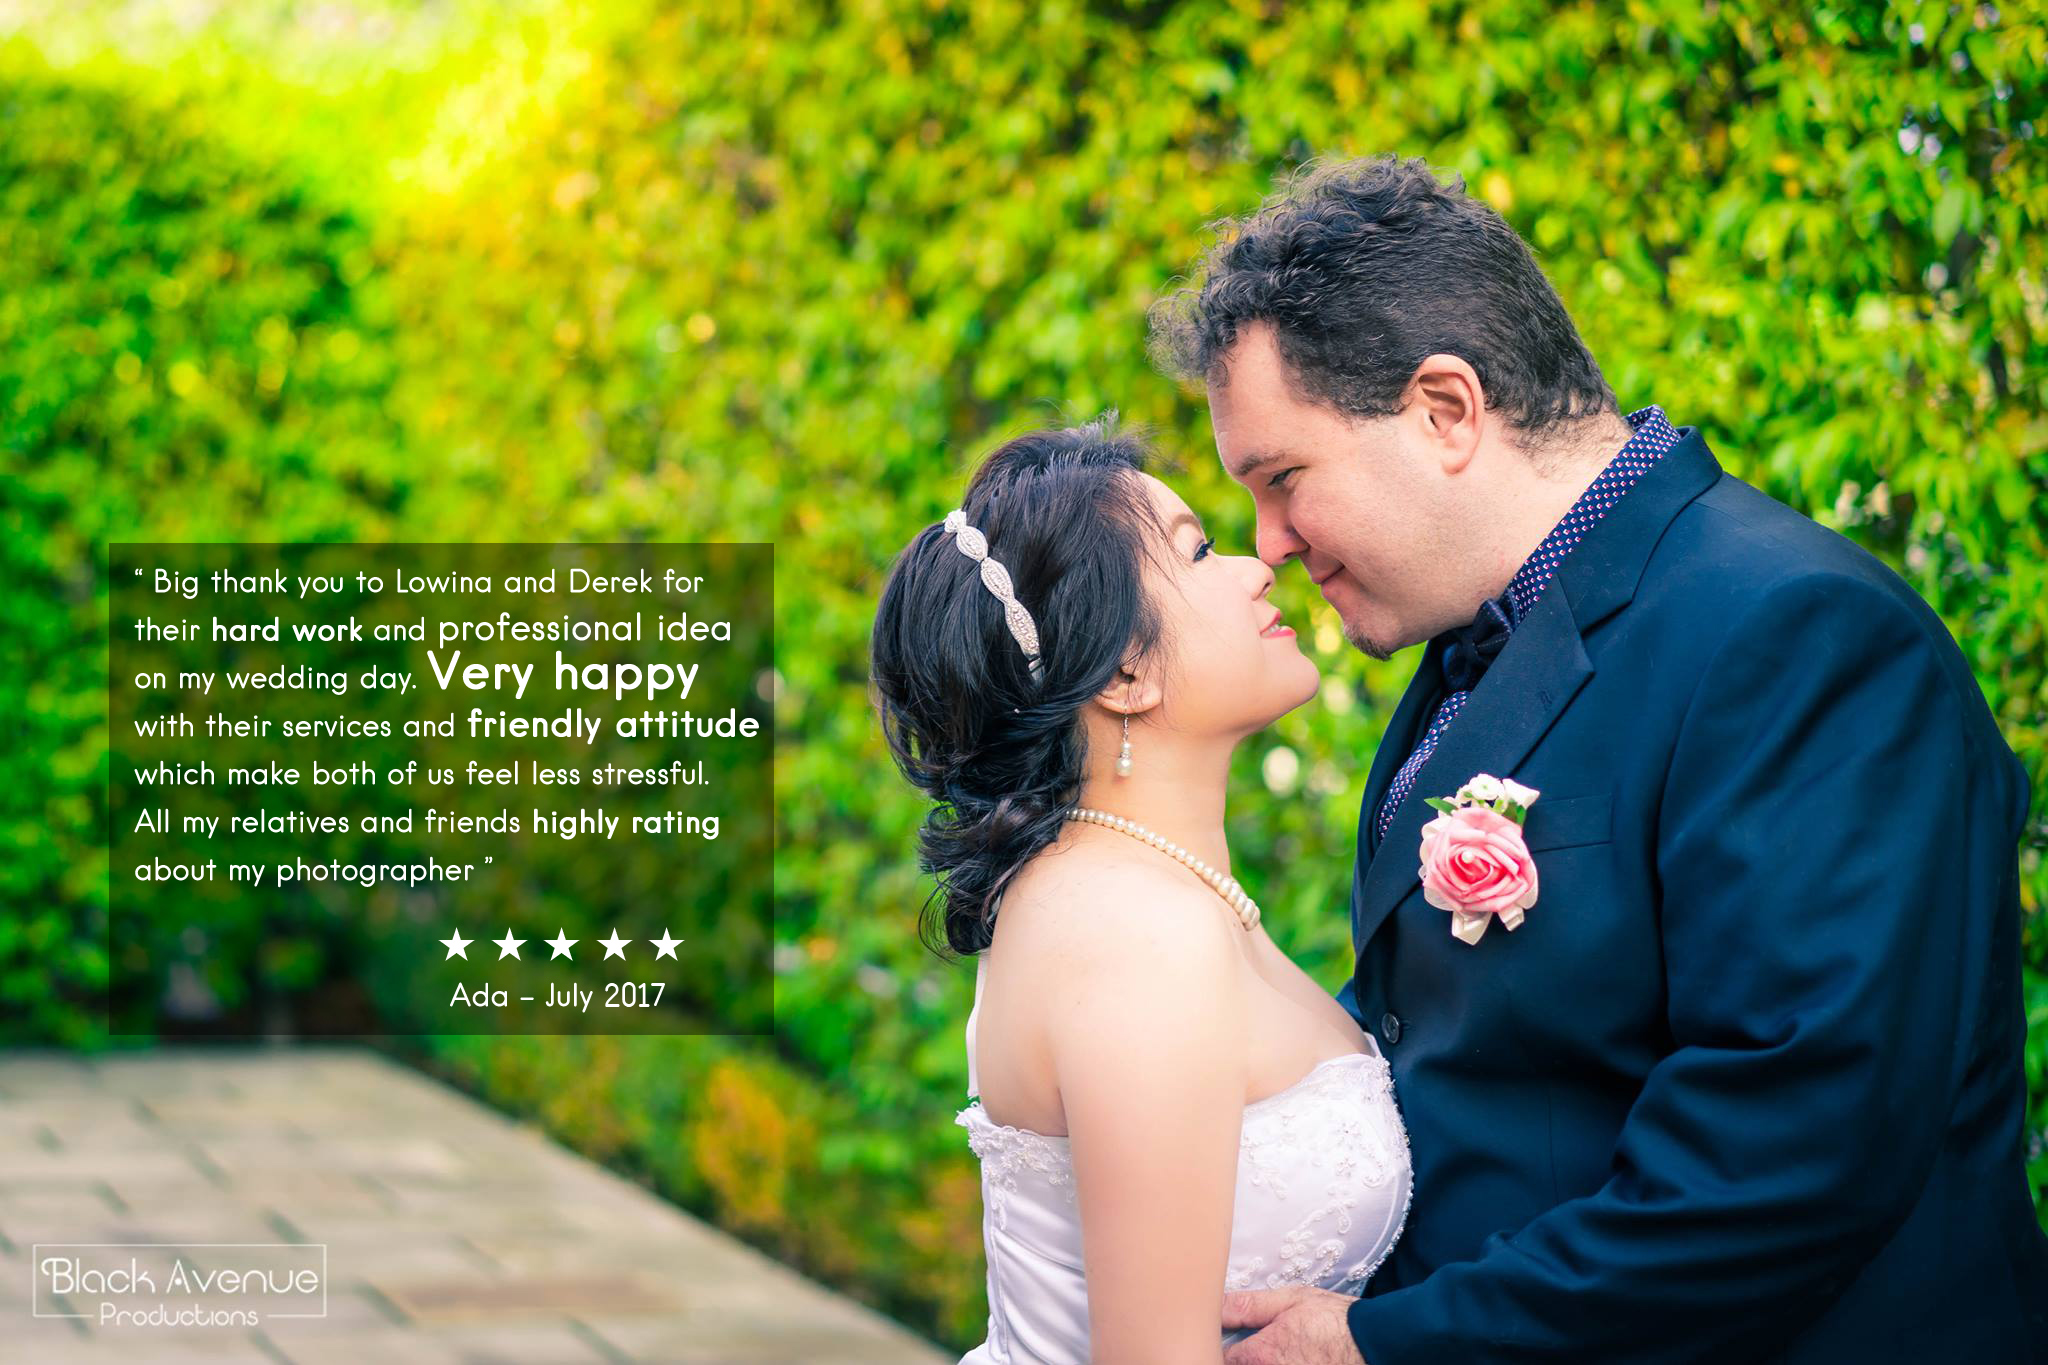 Winter Garden Outdoor Wedding Portrait By A Melbourne Photographer Service For Bride And Groom